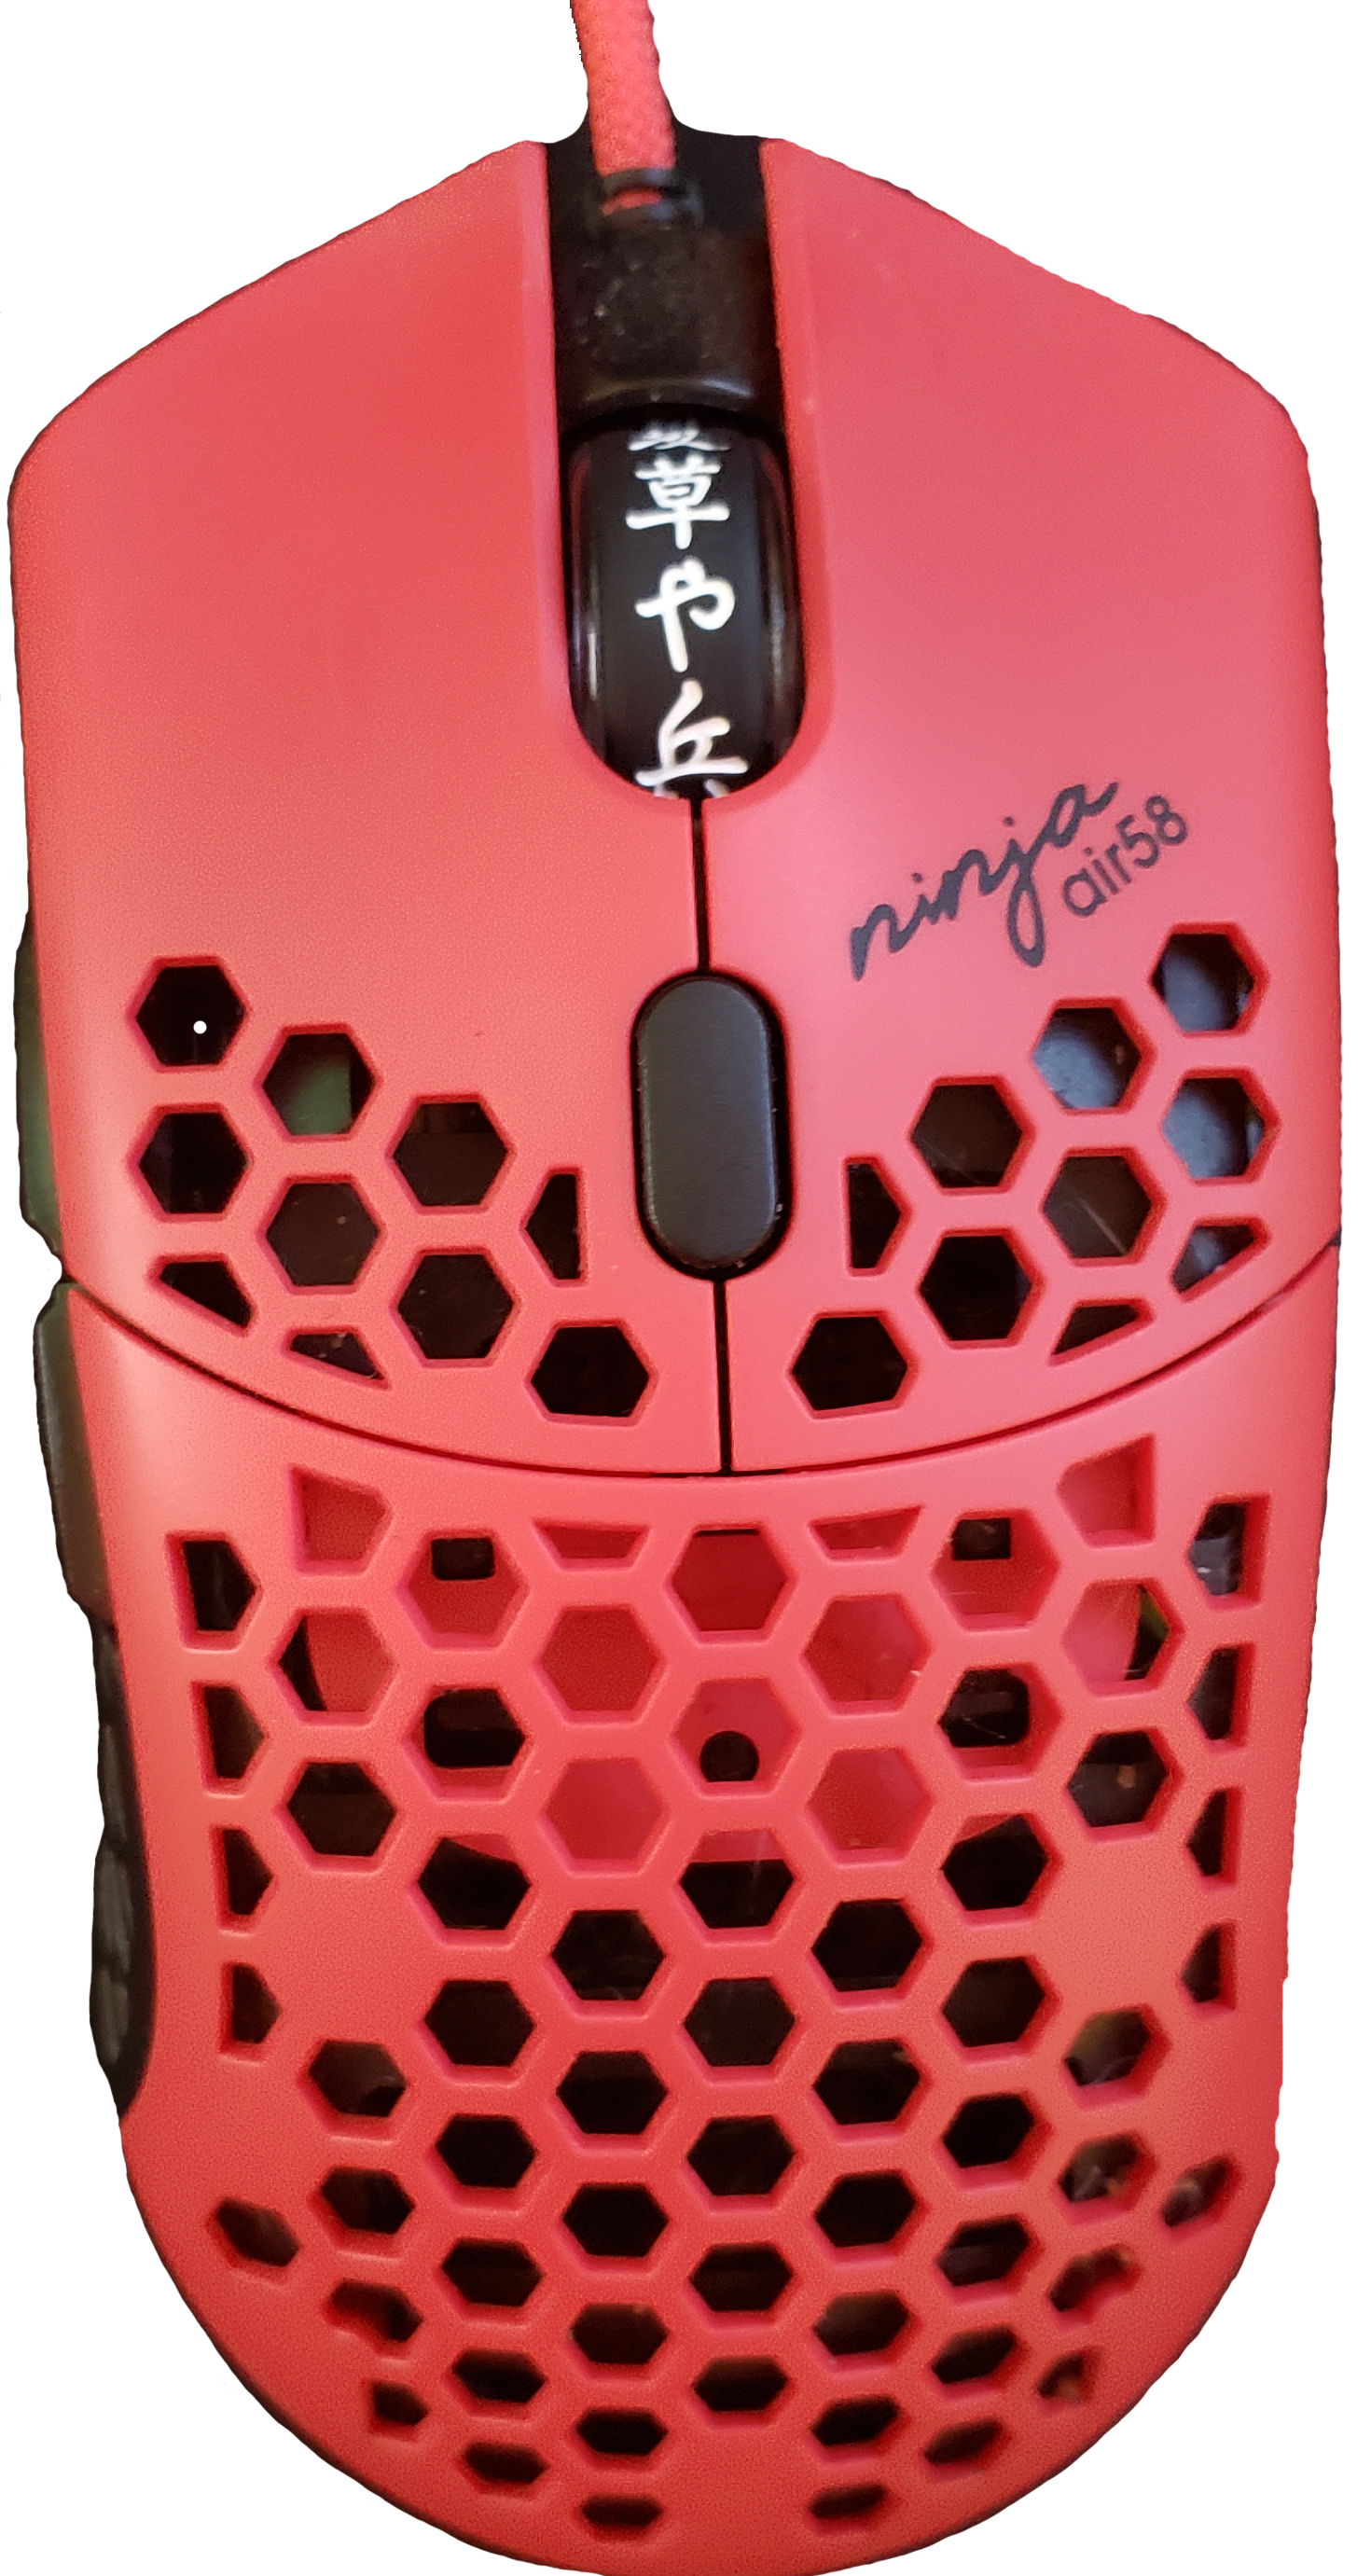 58 Best Adidas Top Ten Images On Pinterest: Best Gaming Mouse For Apex Legends